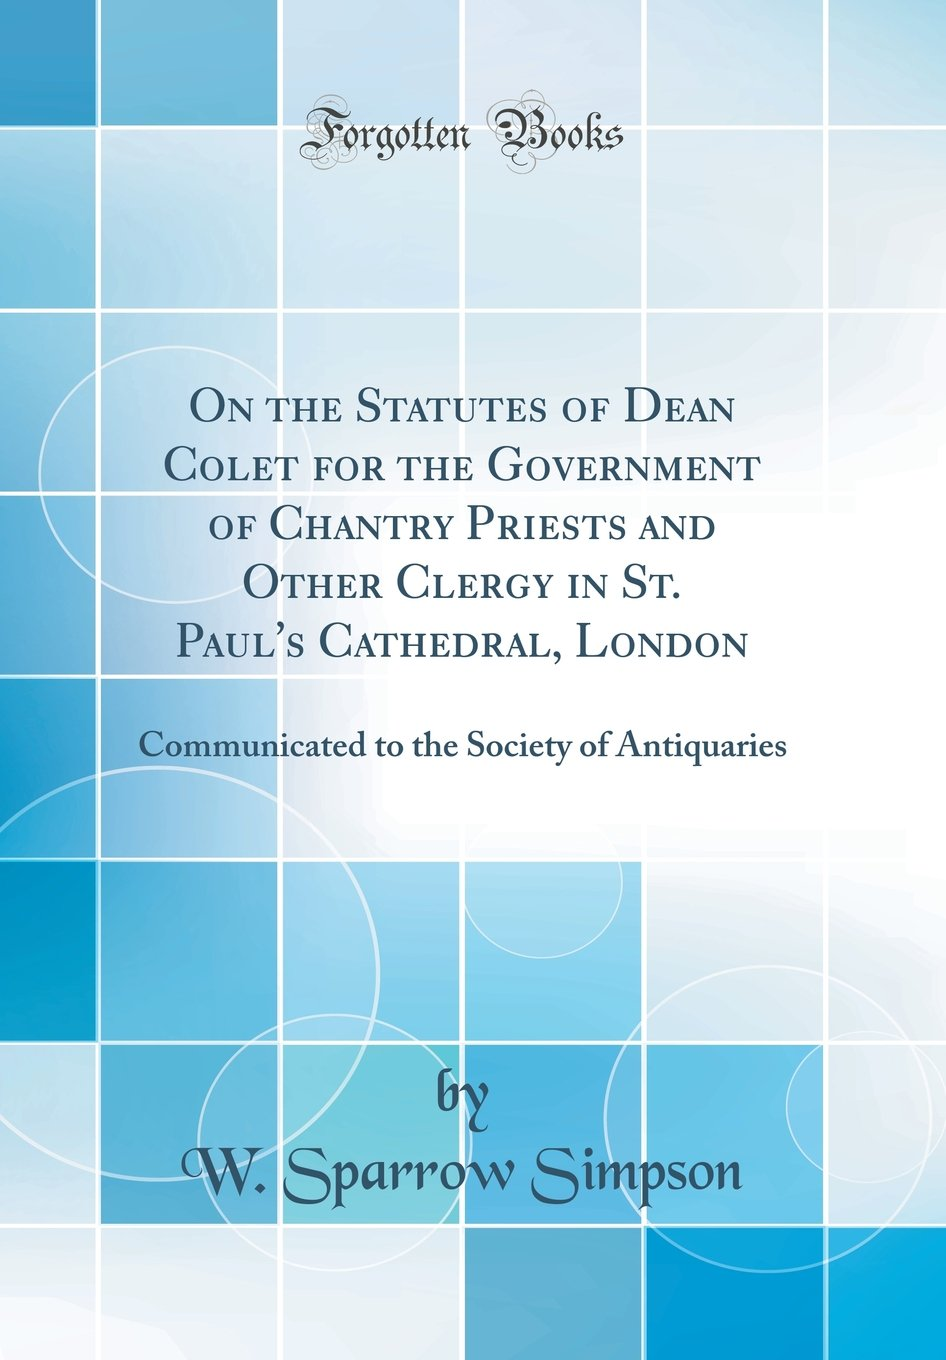 Download On the Statutes of Dean Colet for the Government of Chantry Priests and Other Clergy in St. Paul's Cathedral, London: Communicated to the Society of Antiquaries (Classic Reprint) ebook